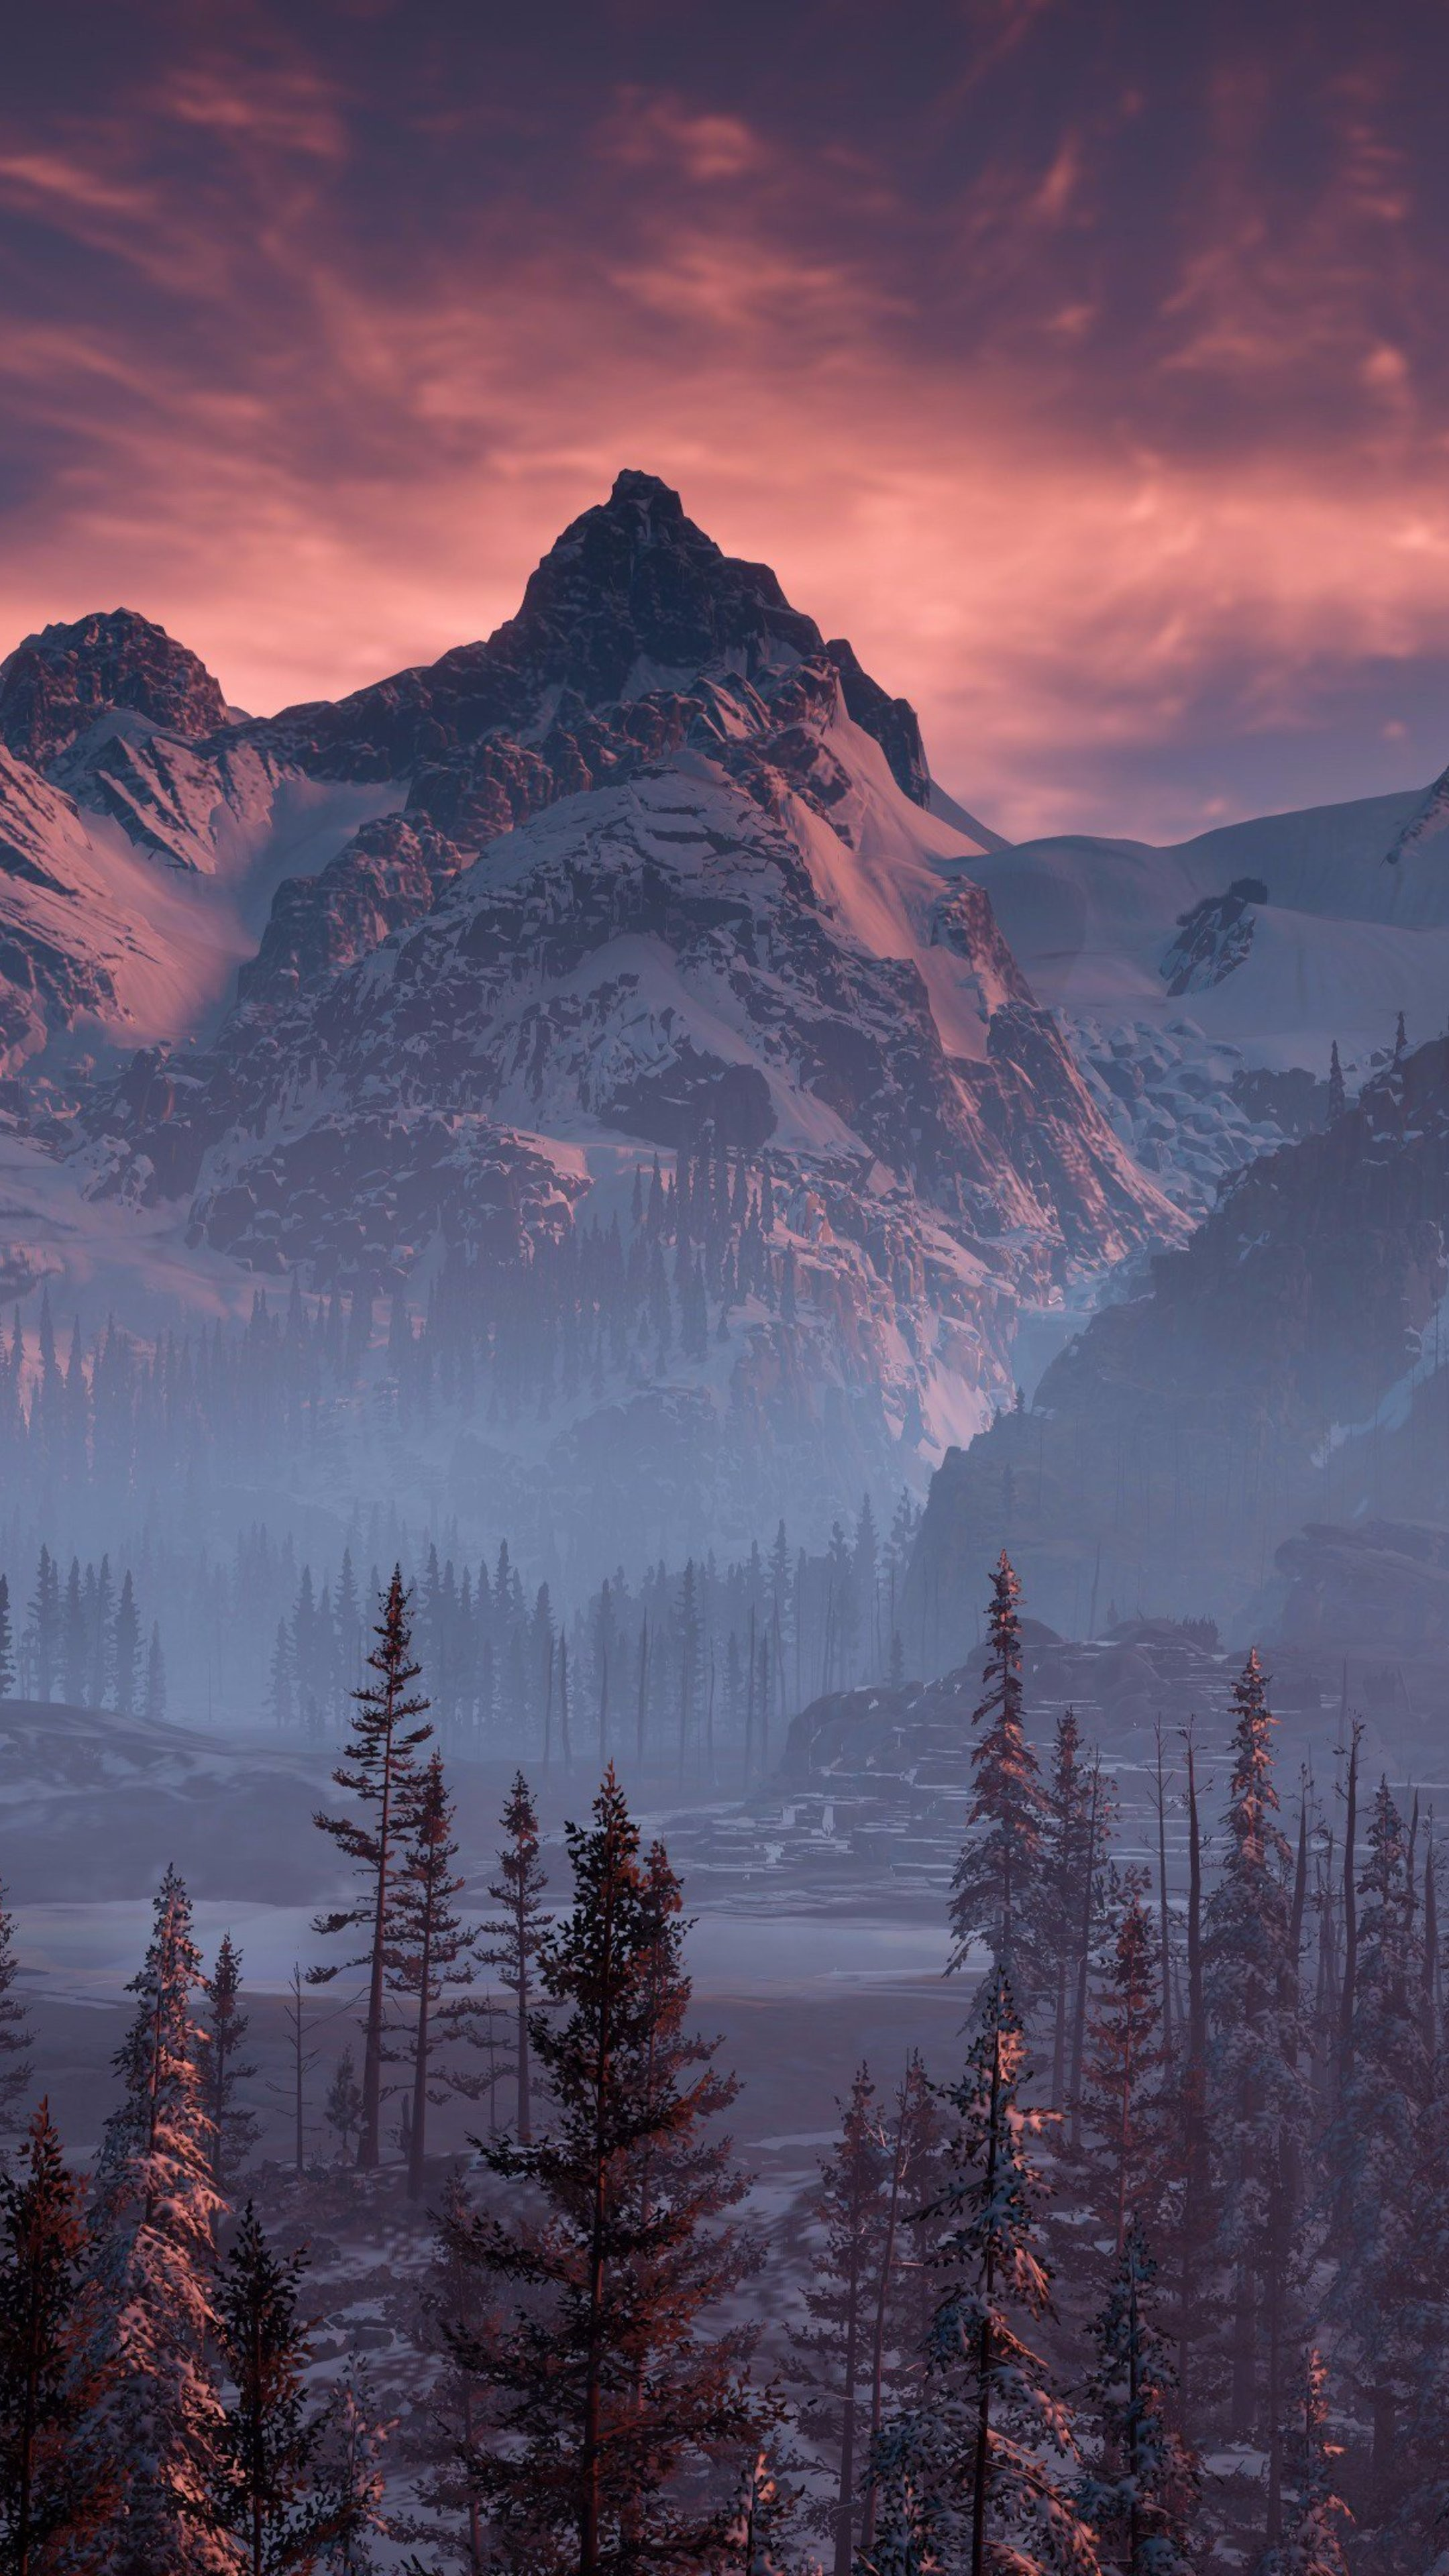 Horizon zero dawn nature mountains trees sky yj wallpaper - Horizon zero dawn android wallpaper ...